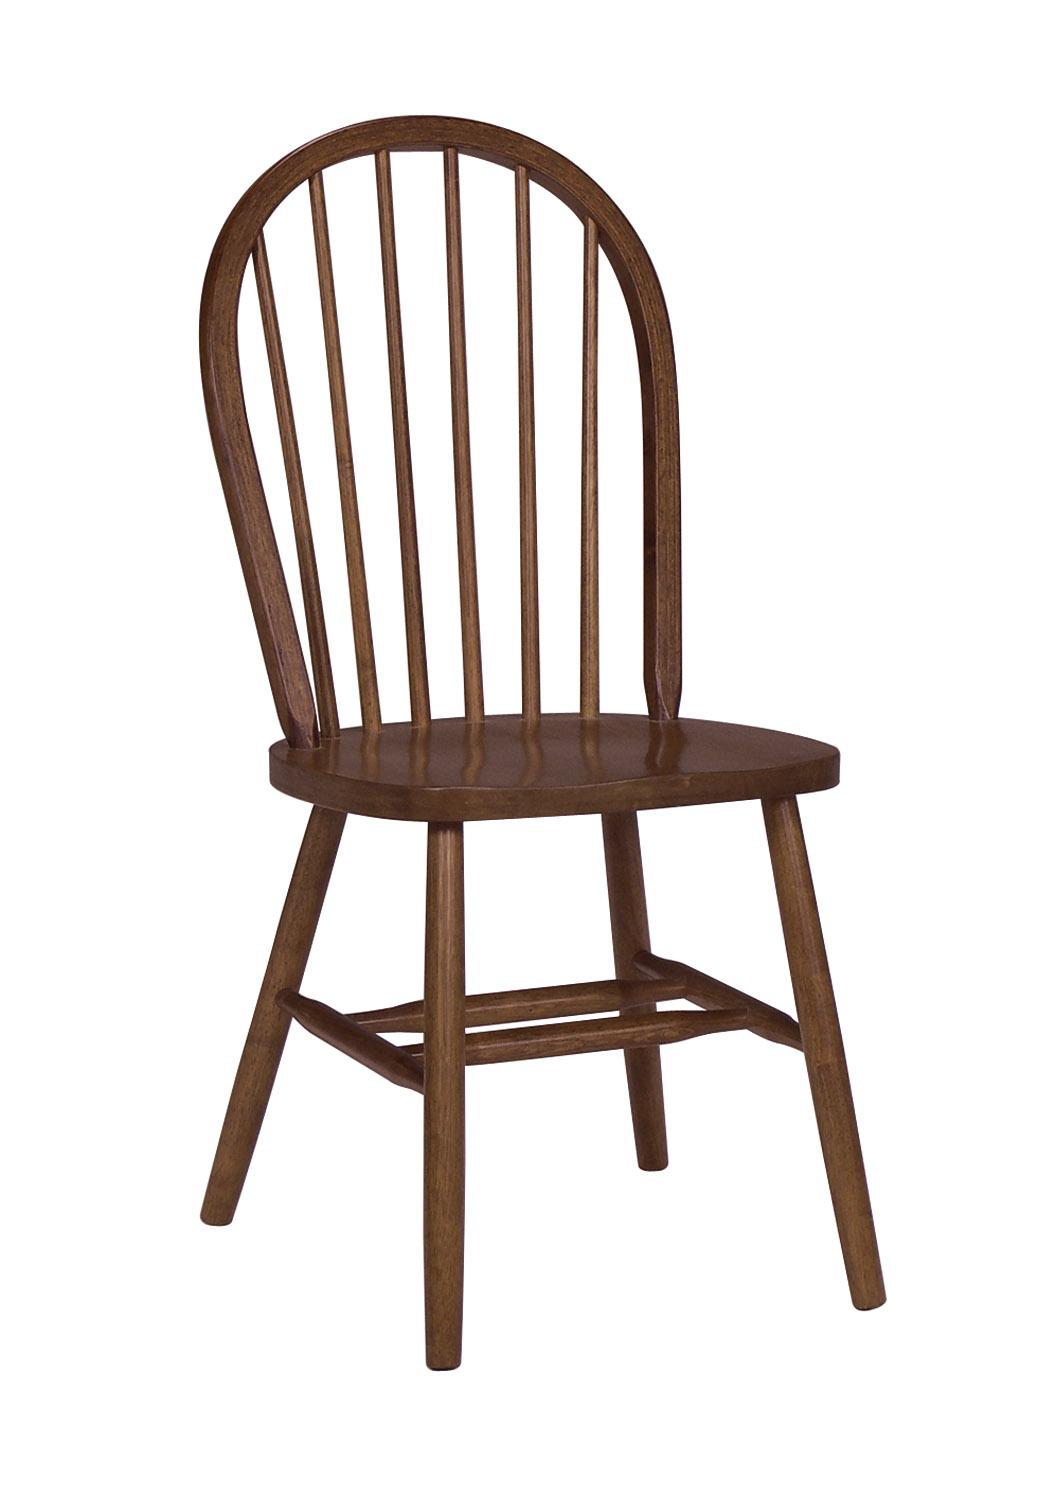 John Thomas Dining Essentials Windsor Dining Side Chair - Item Number: C48-112